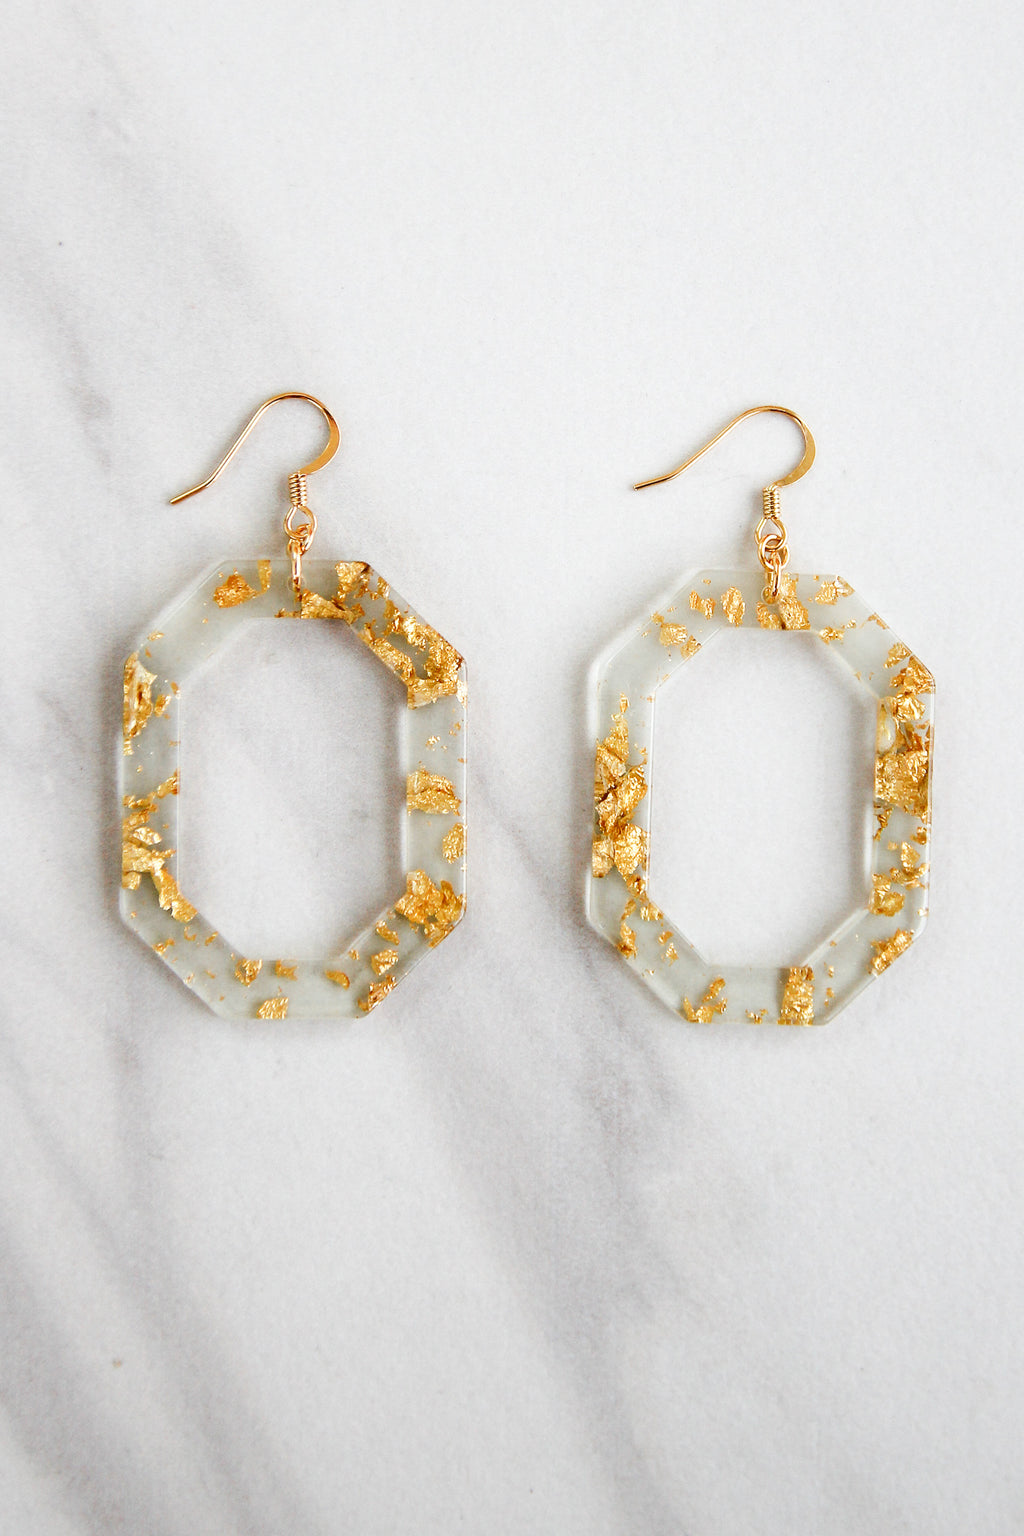 In The Future Acrylic Earrings - Clear